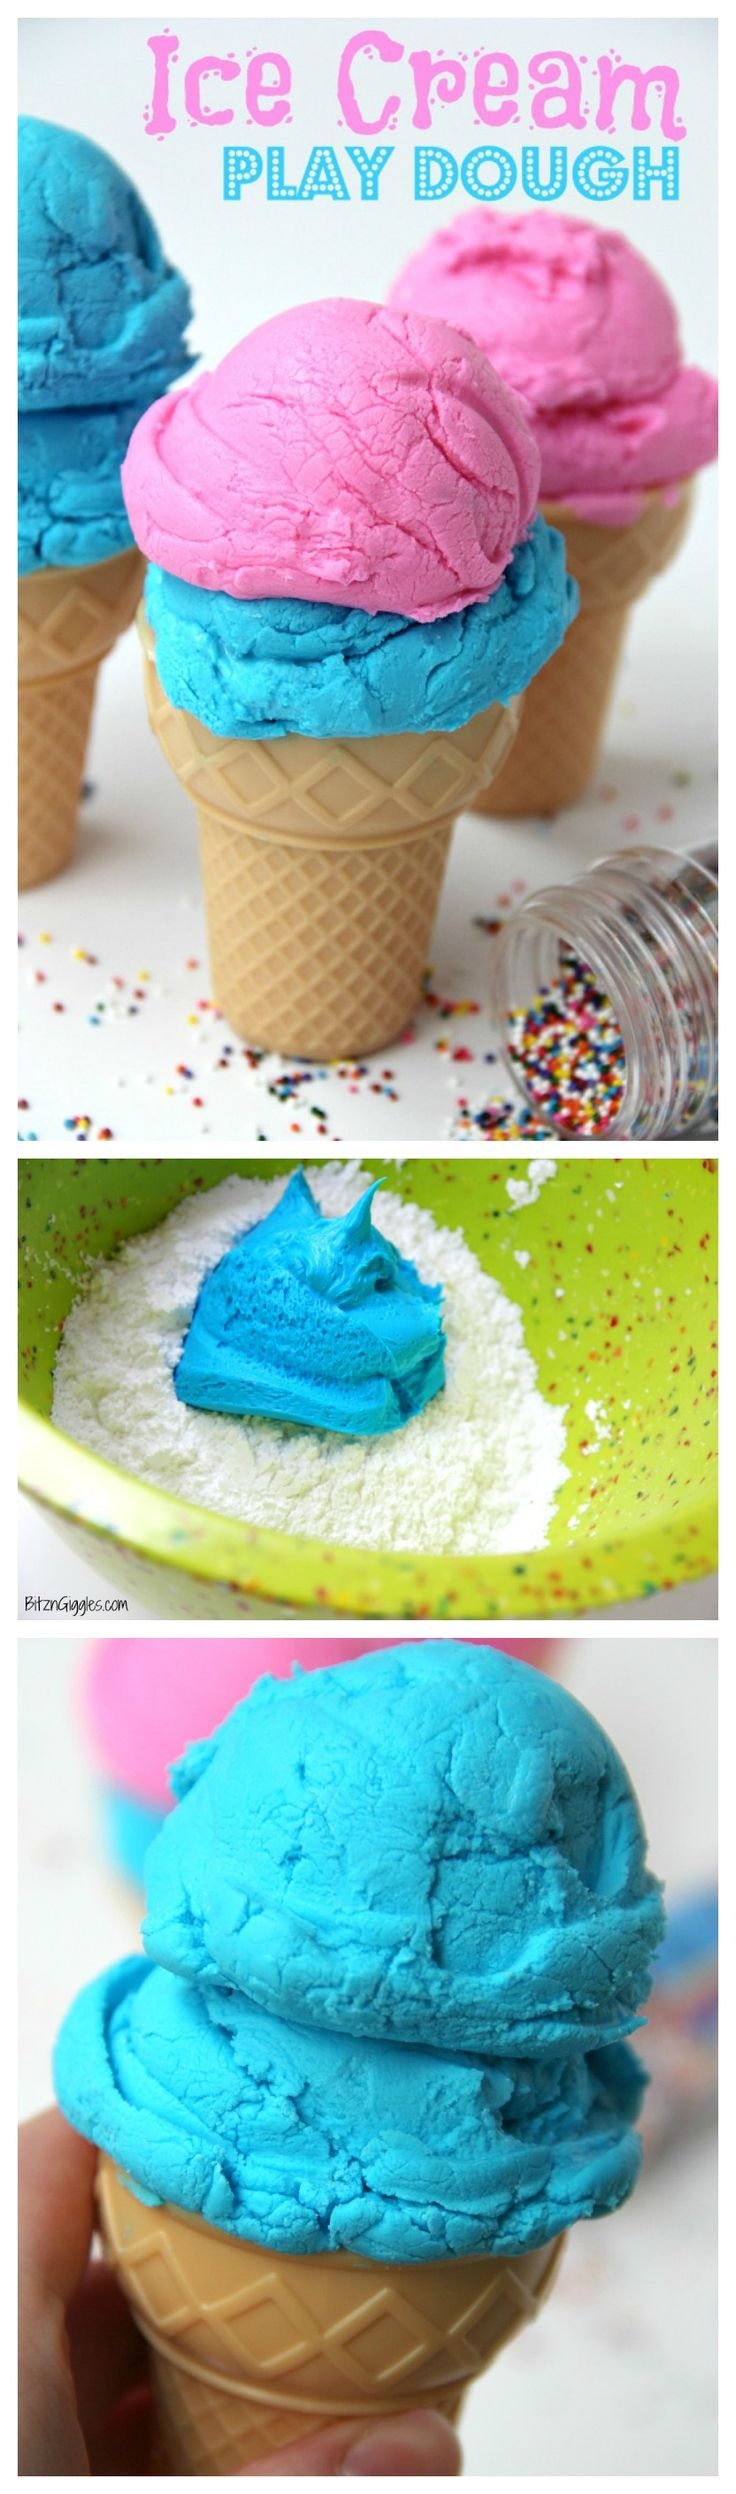 Ice Cream Play Dough - A two-ingredient 100% edible play dough that looks JUST like ice cream!